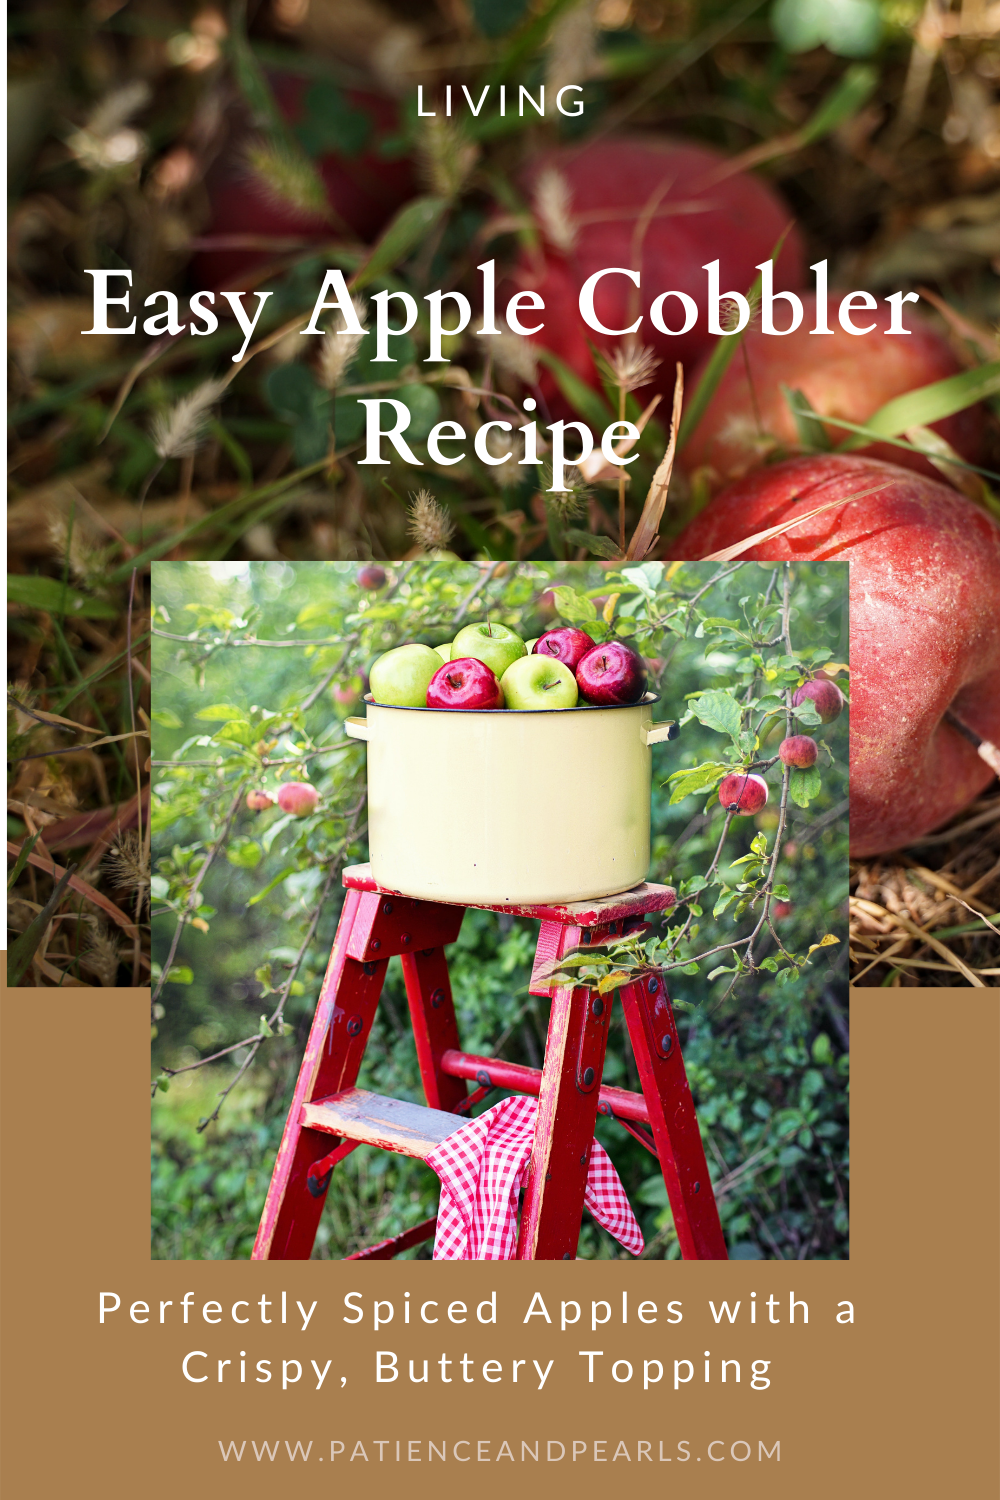 Easy Apple Cobbler Recipe - Pinterest - Patience & Pearls